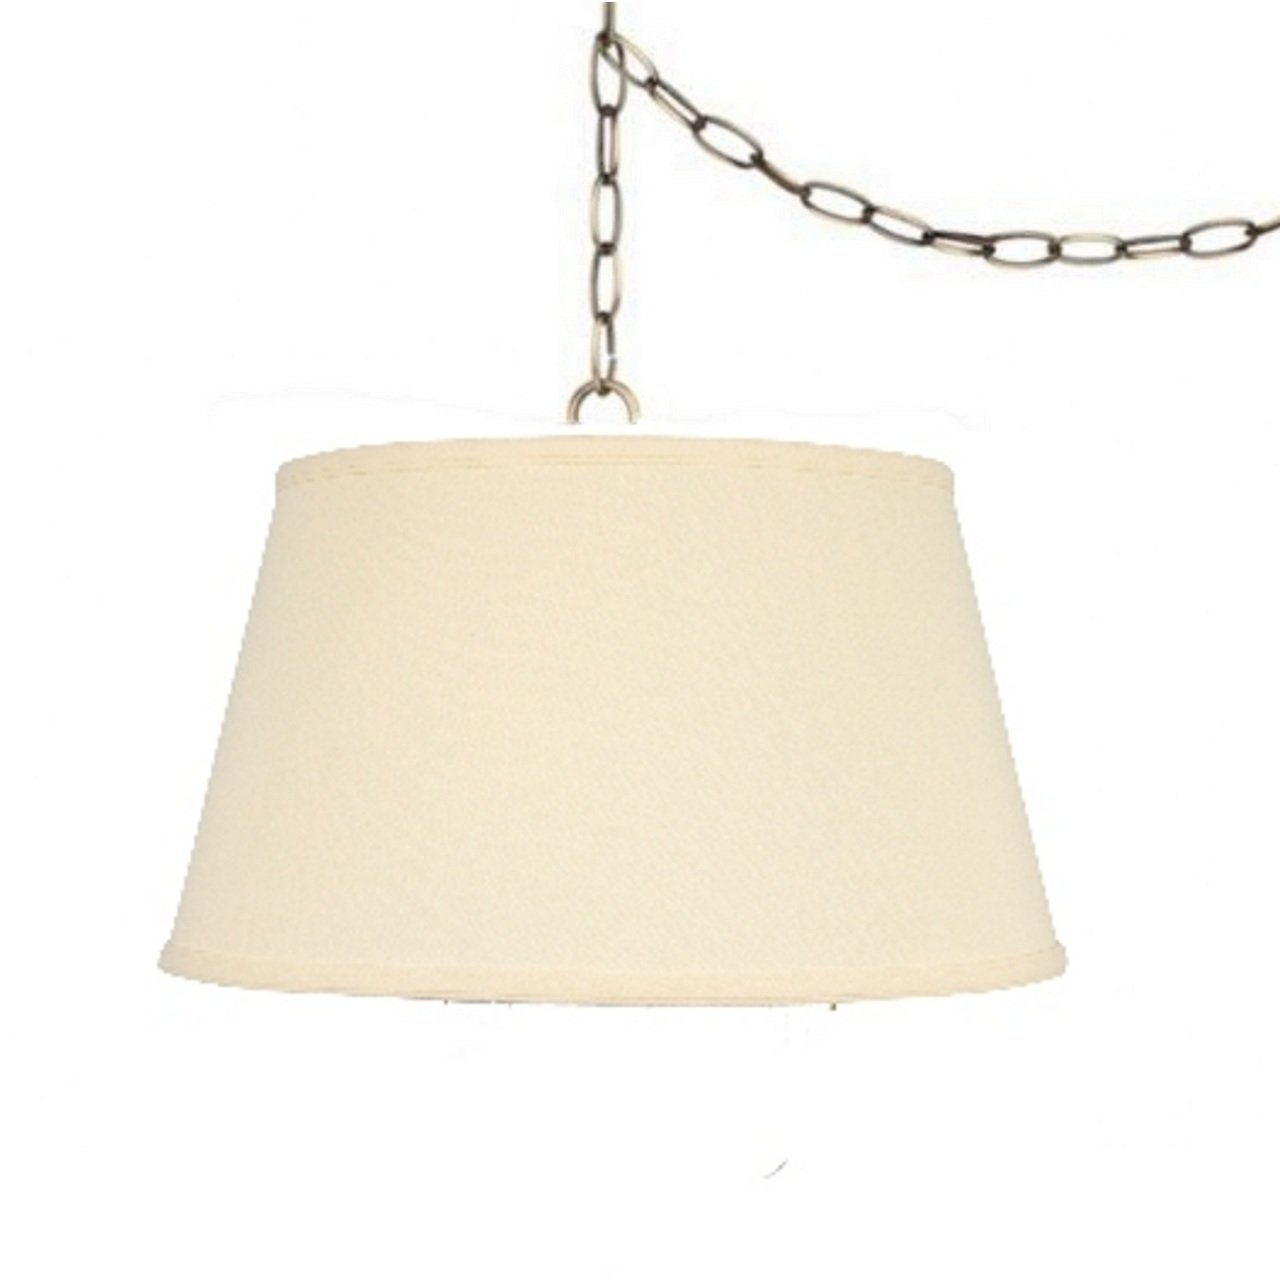 Upgradelights Beige Linen 19 Inch Swag Lamp Pendant with Antiqued Brass Chain 14x19x10.75 by Upgradelights